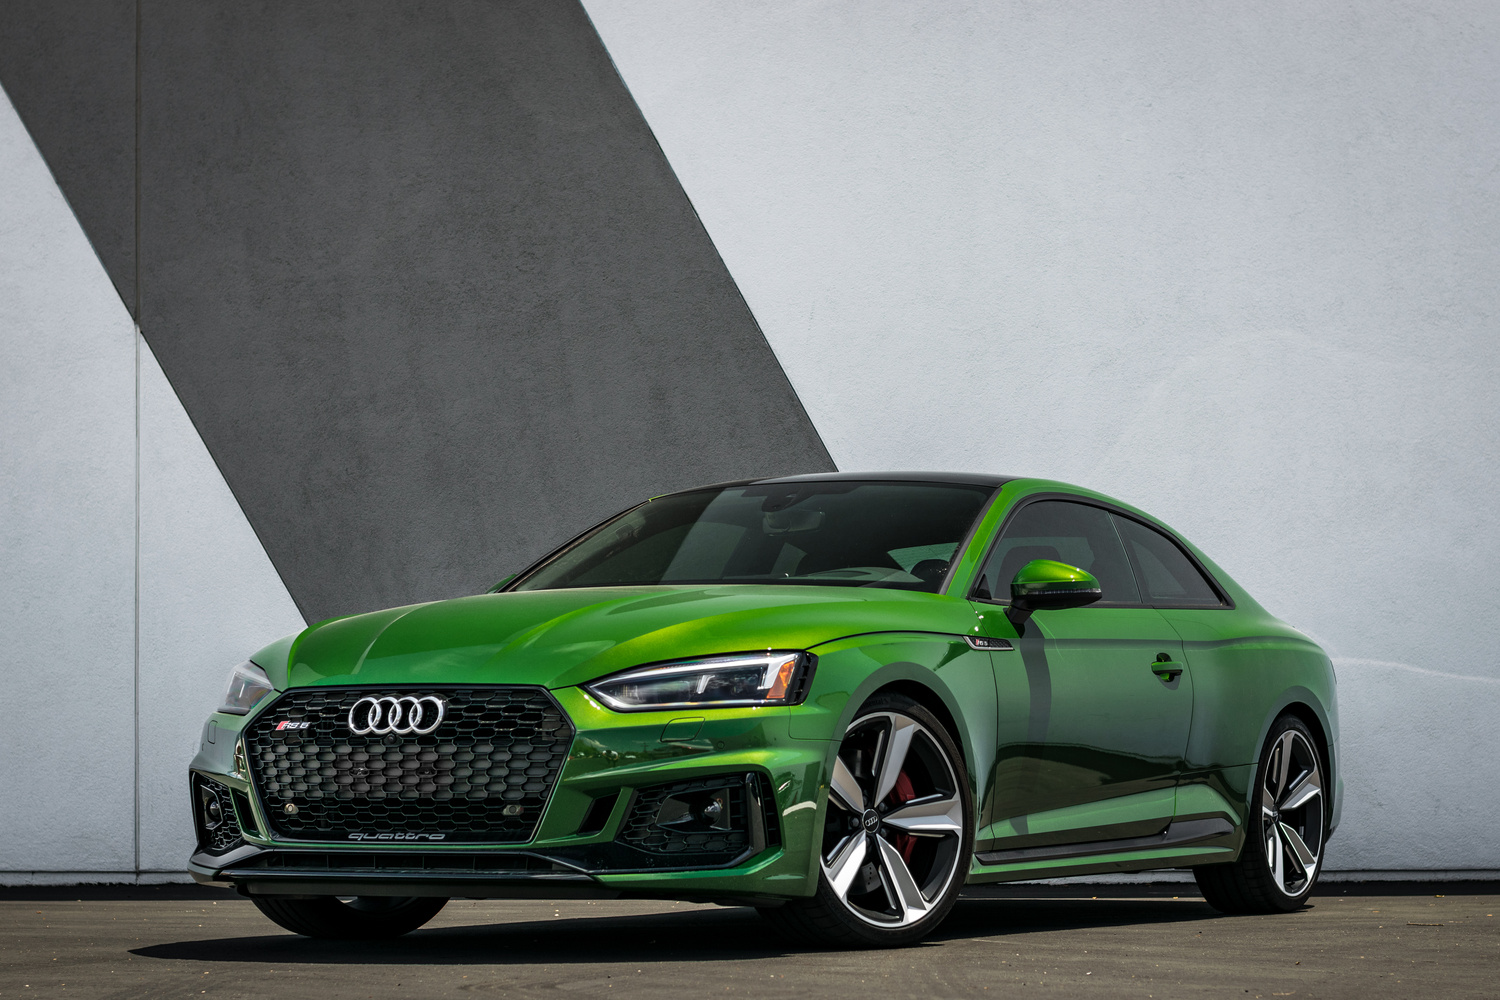 Sonoma Green Audi RS5 by Travis Pinney